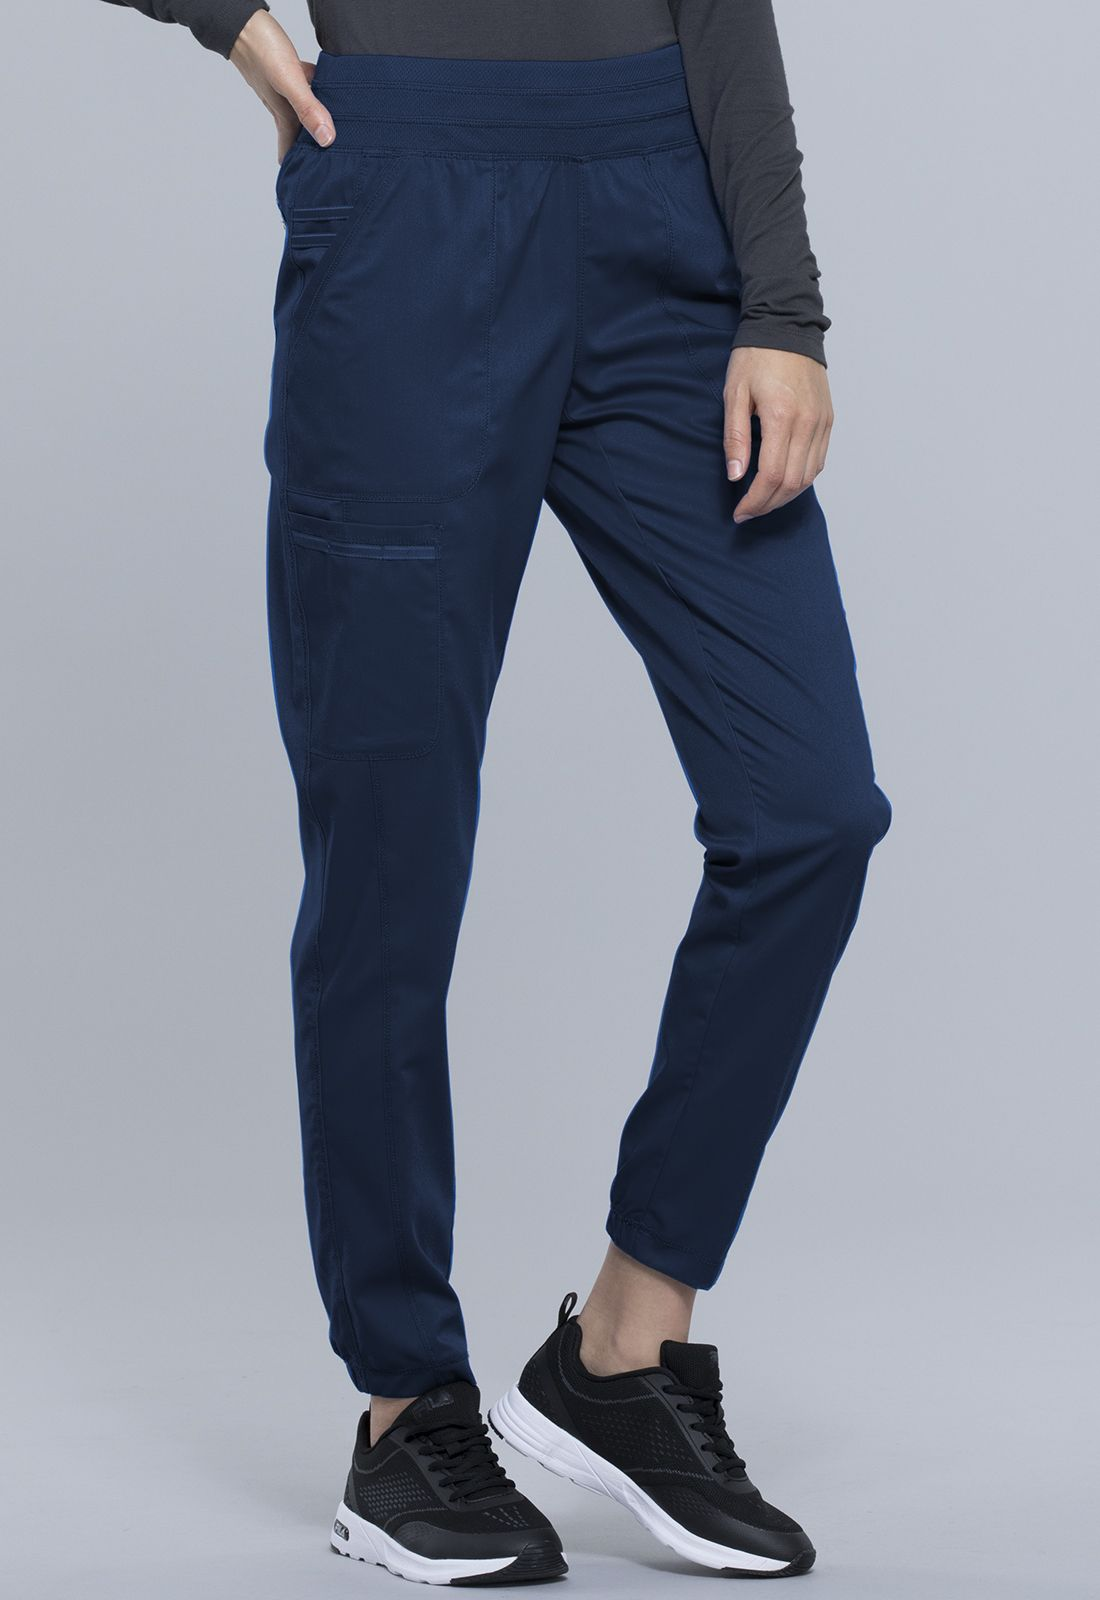 https://medcloth.by/images/stories/virtuemart/product/ww011-navy-3.jpg